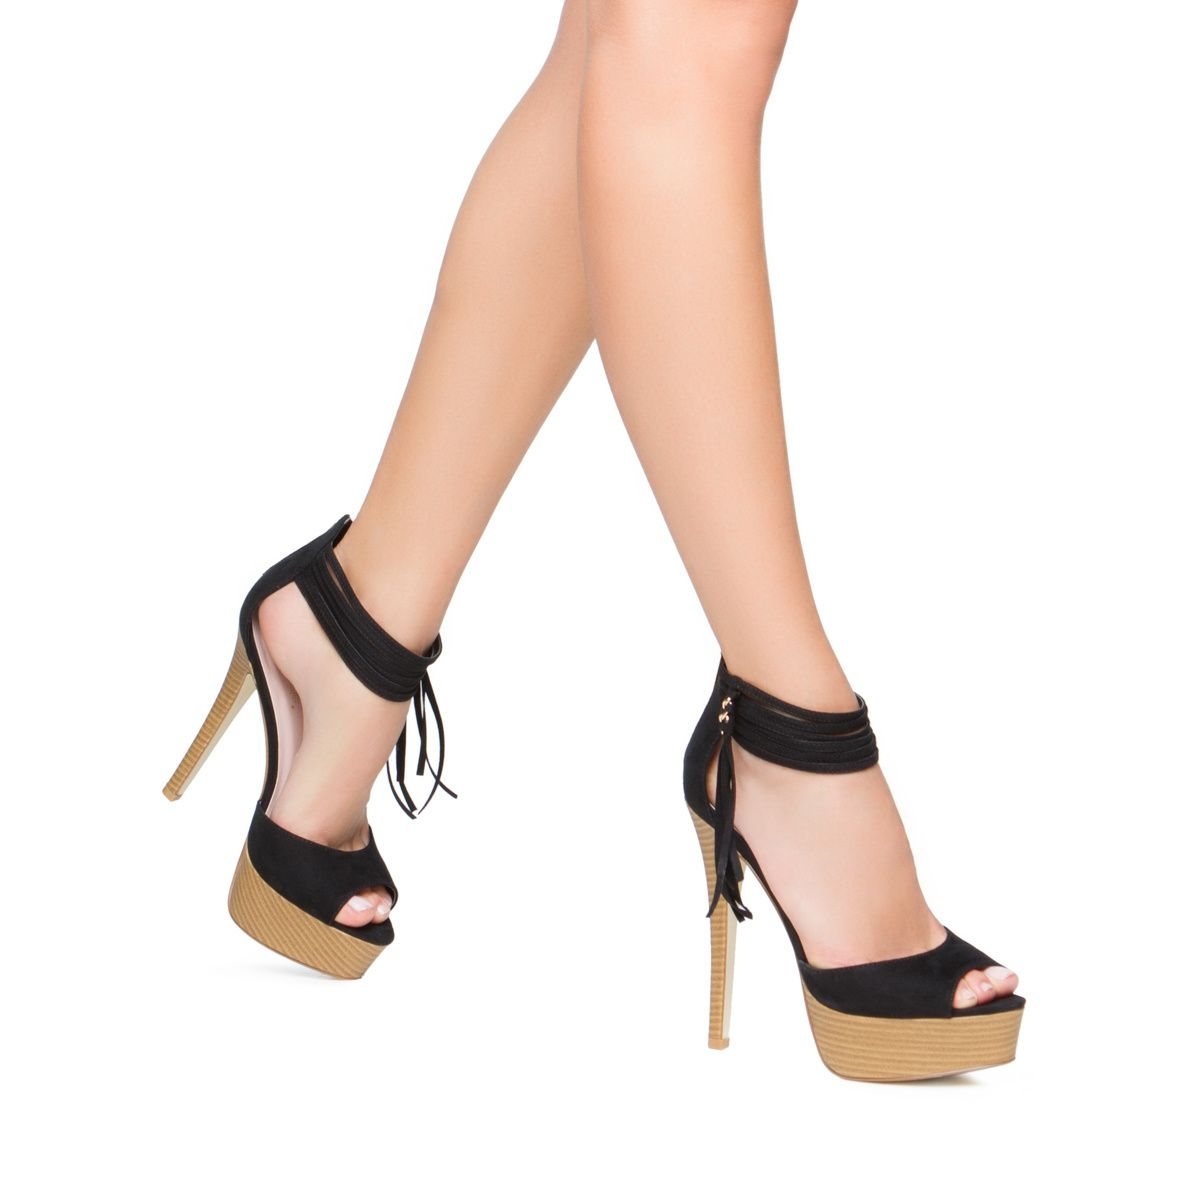 ELLOWEN - ShoeDazzle